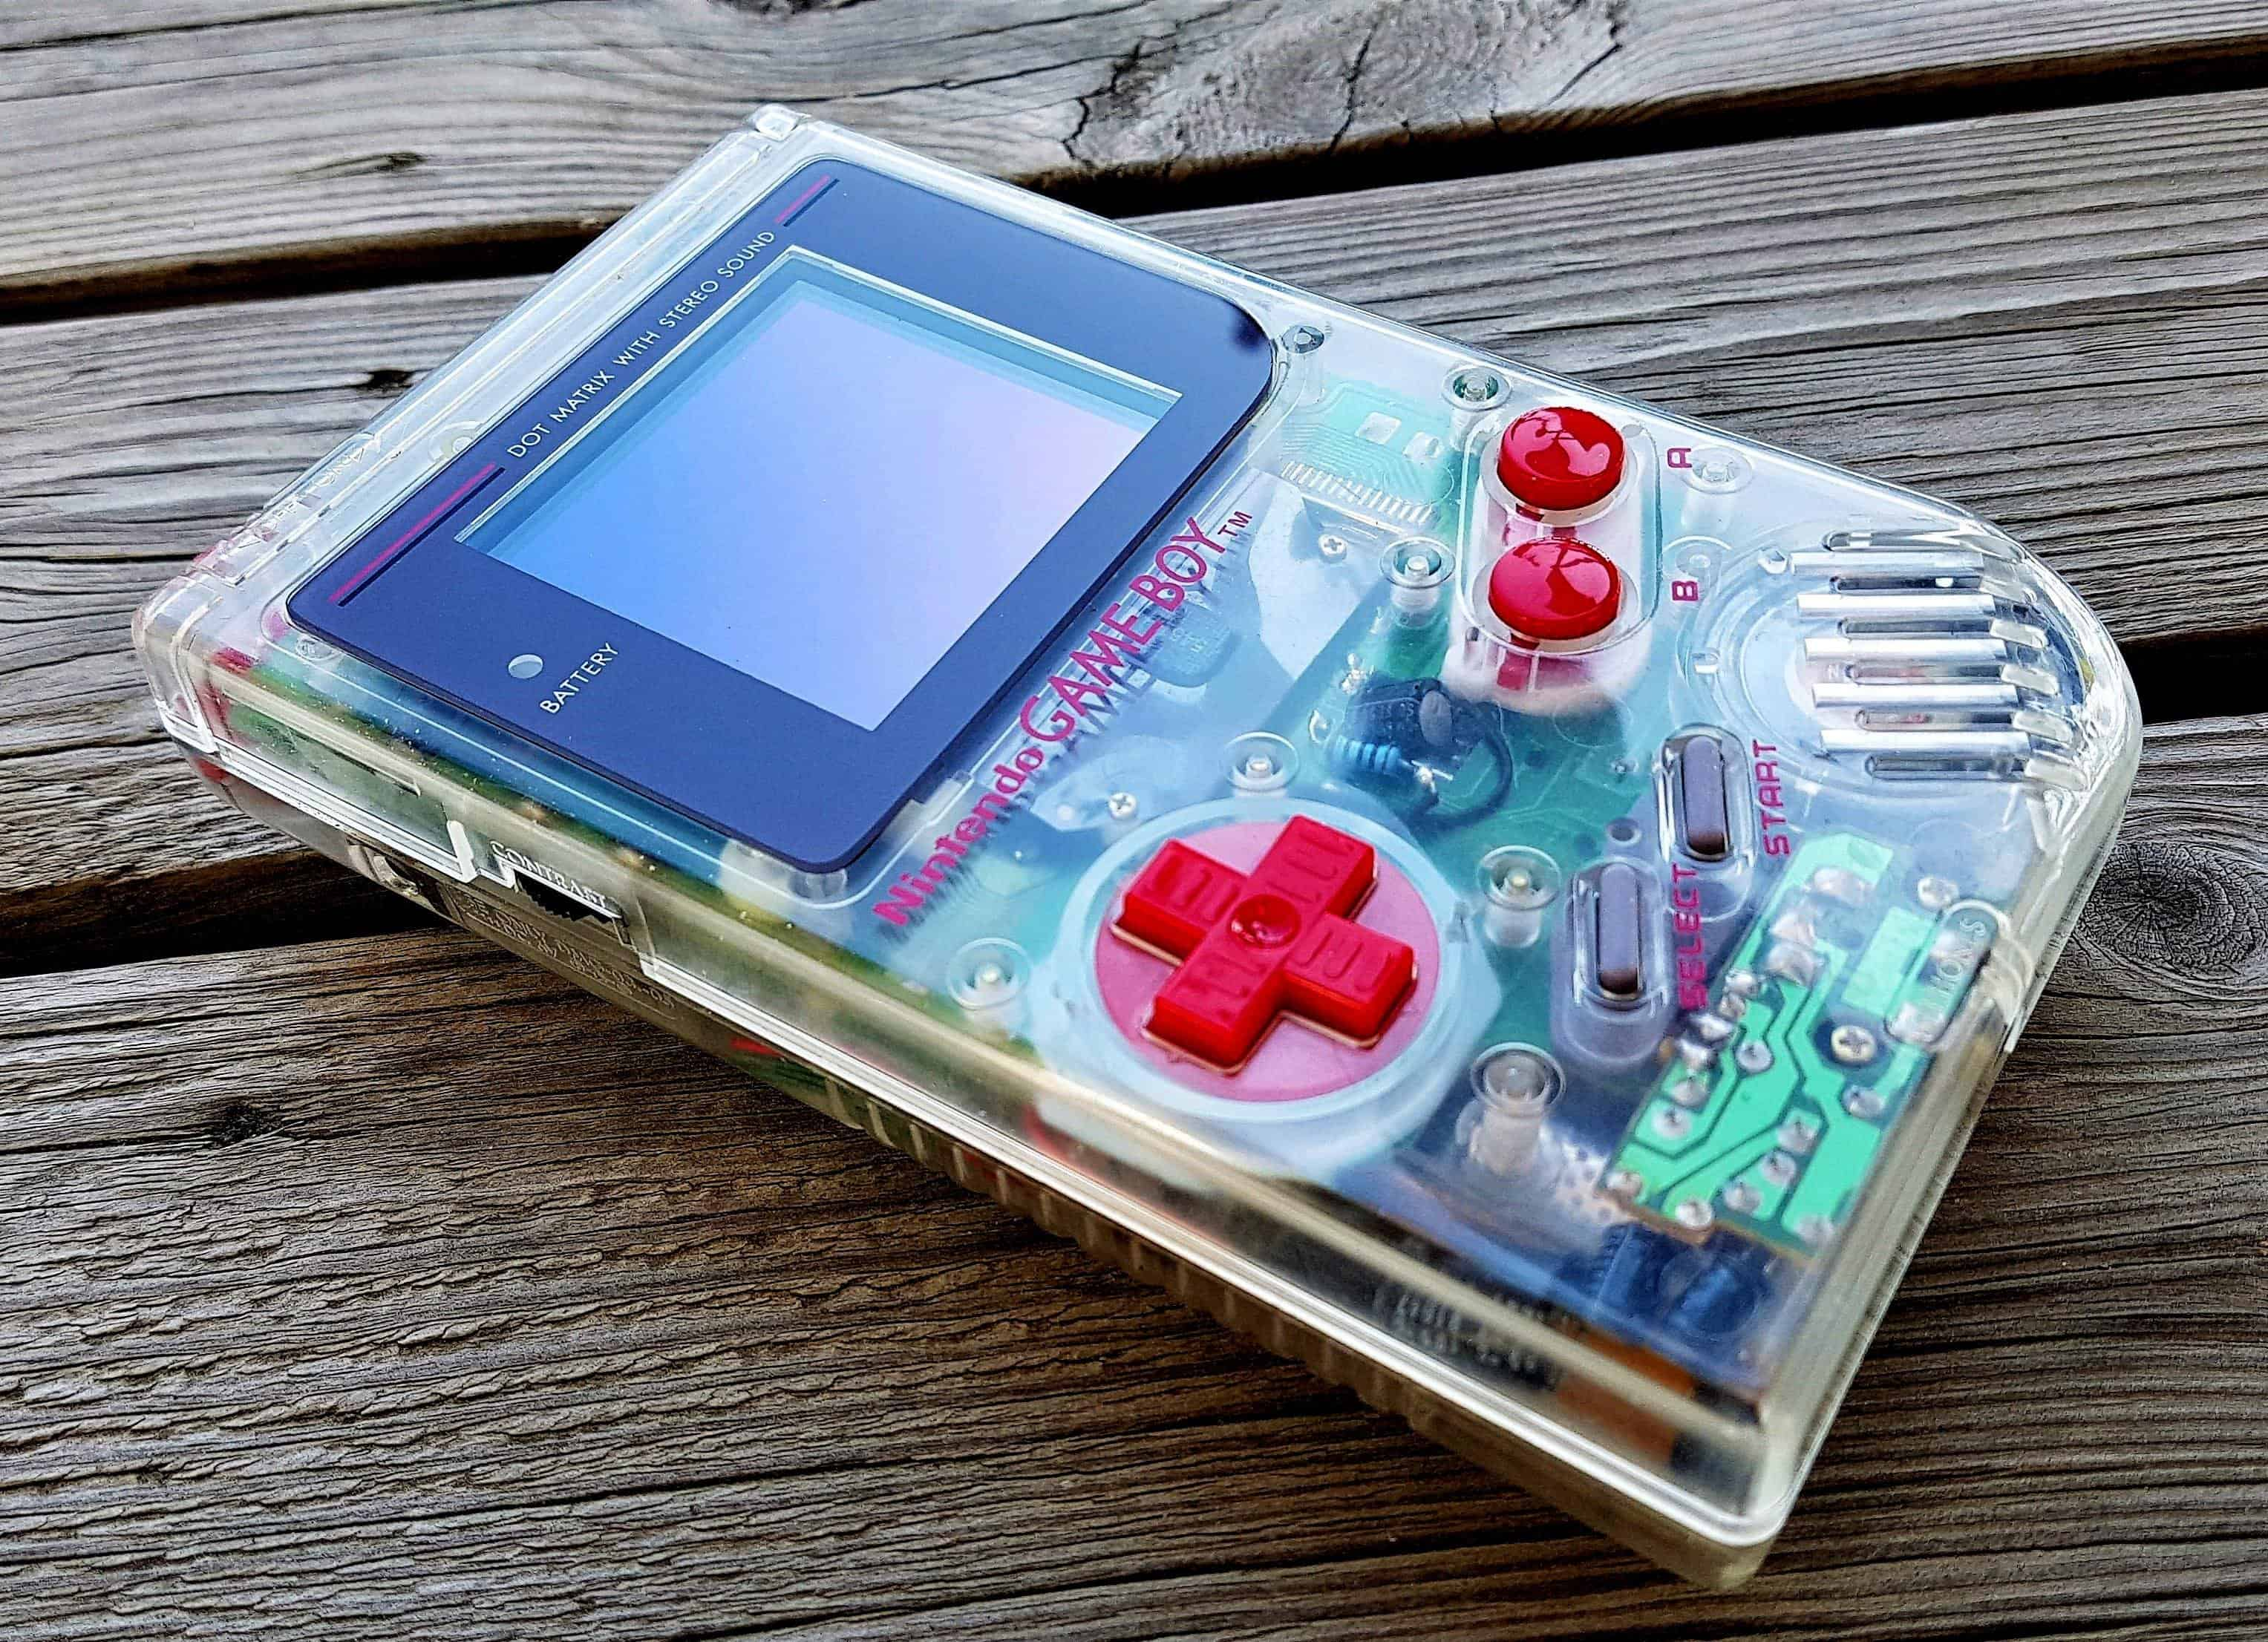 Game boy clear 2018 modded